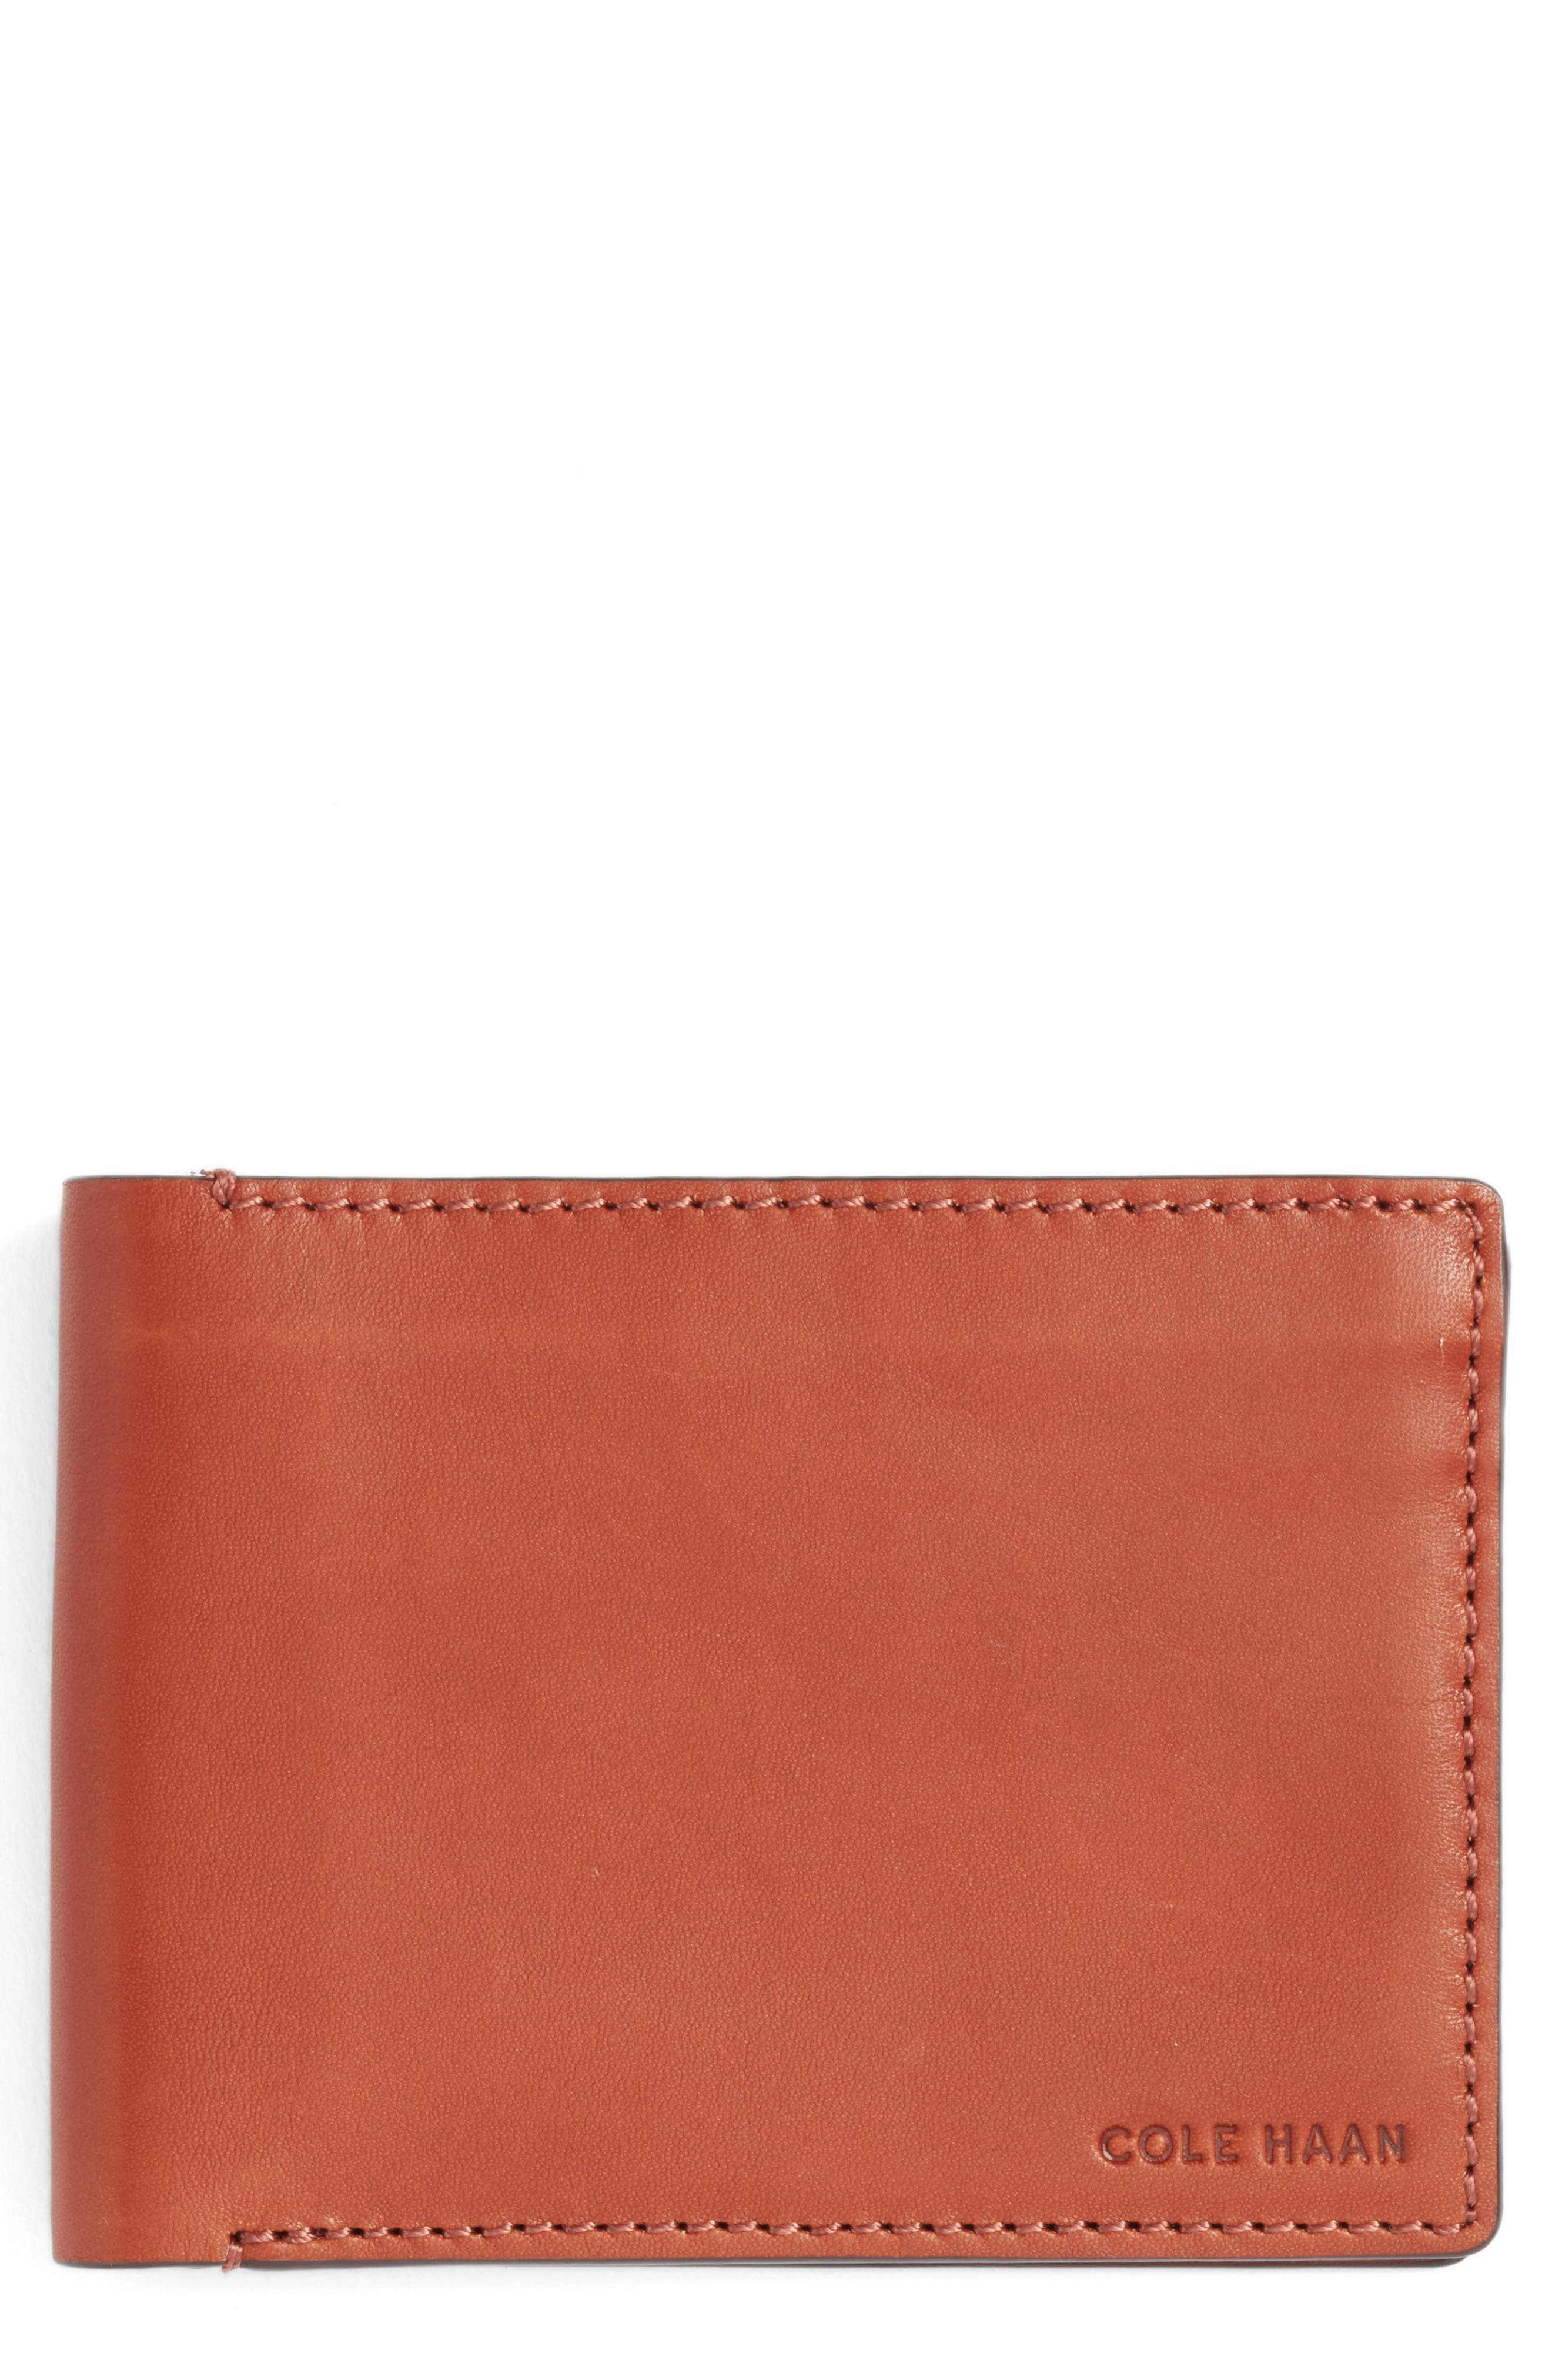 Cole Haan Bifold Leather Wallet with Pass Case